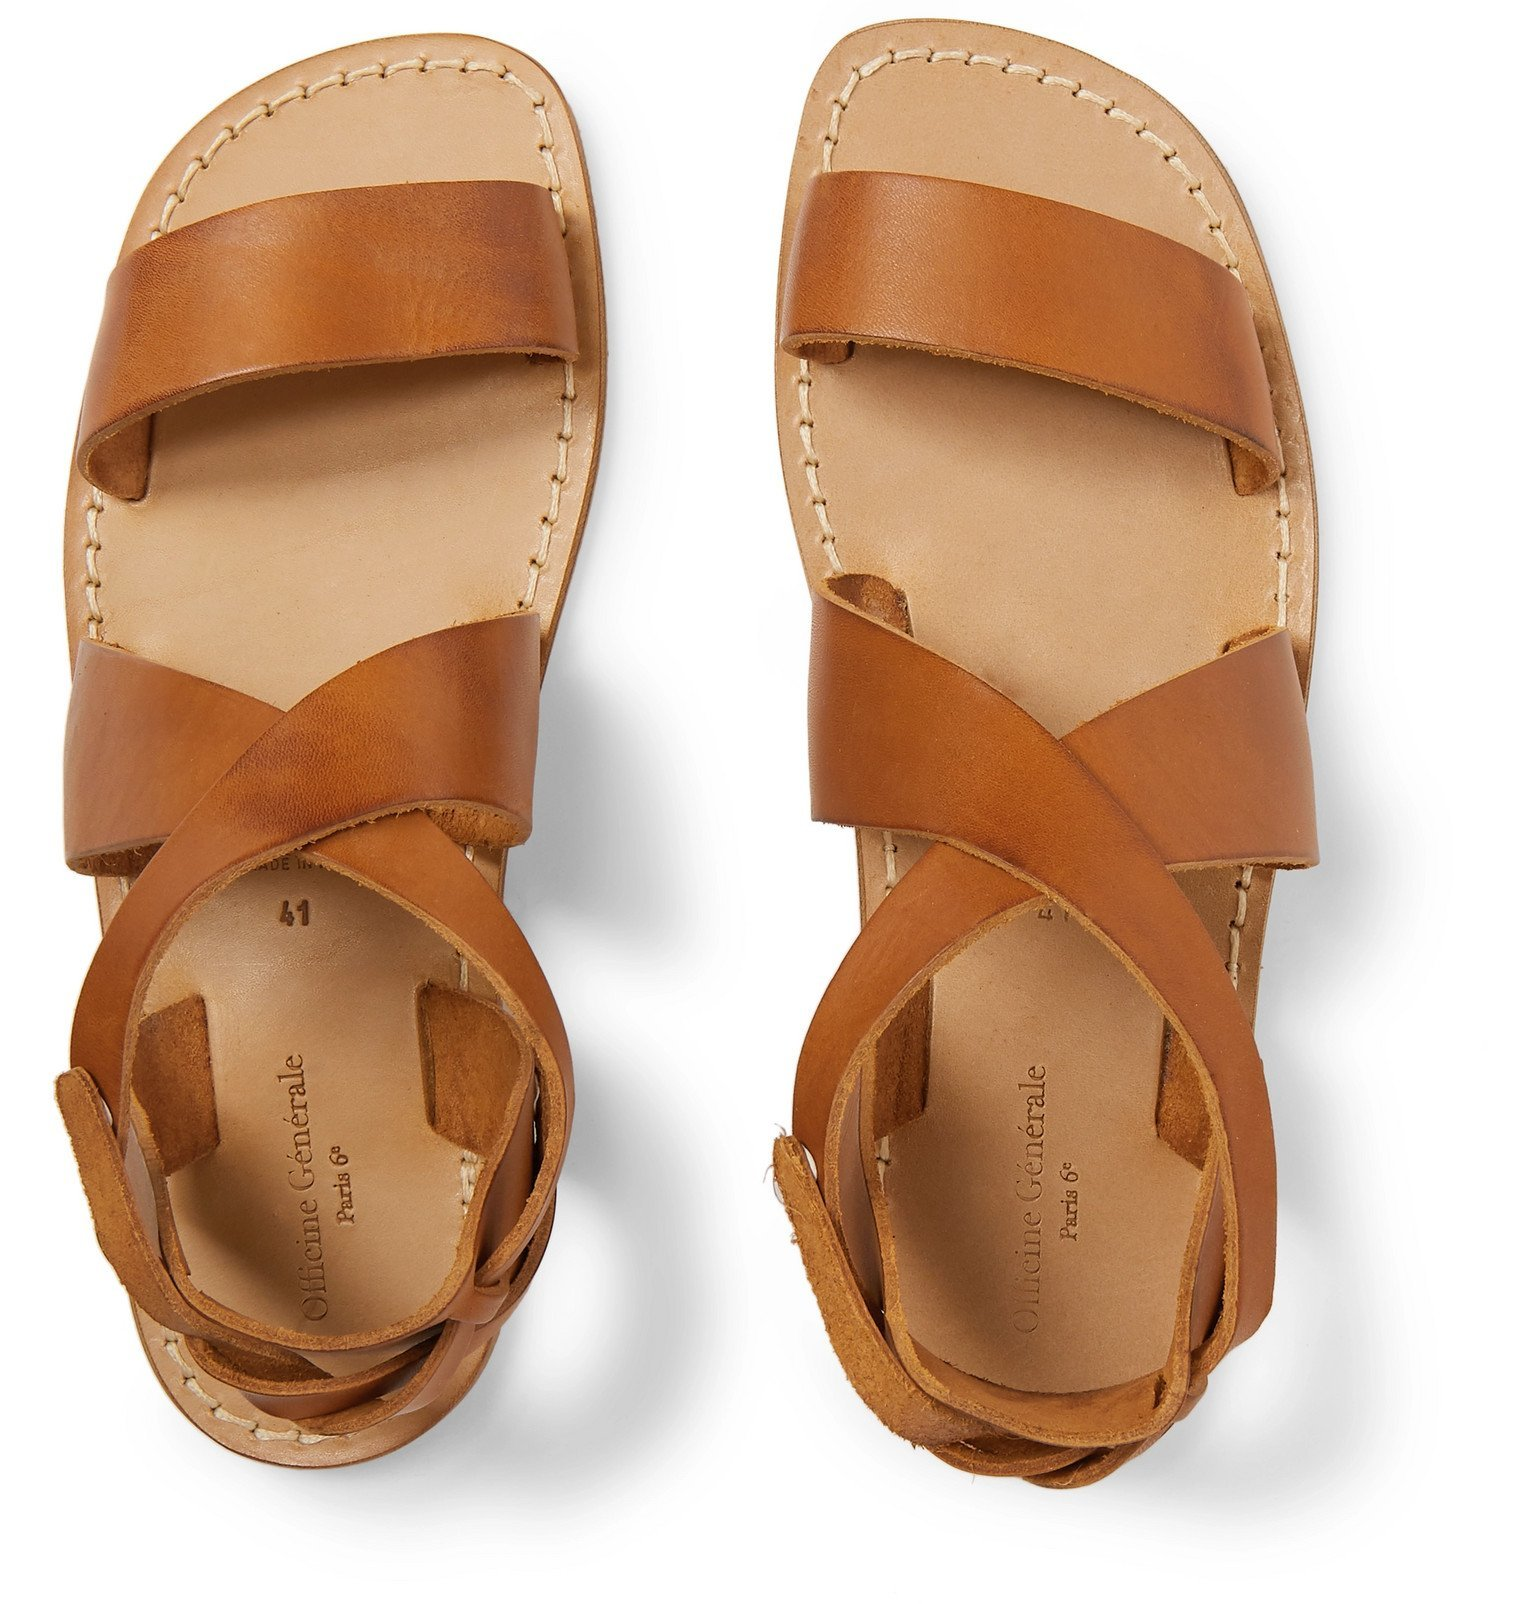 Officine Generale - Positano Leather Sandals - Brown